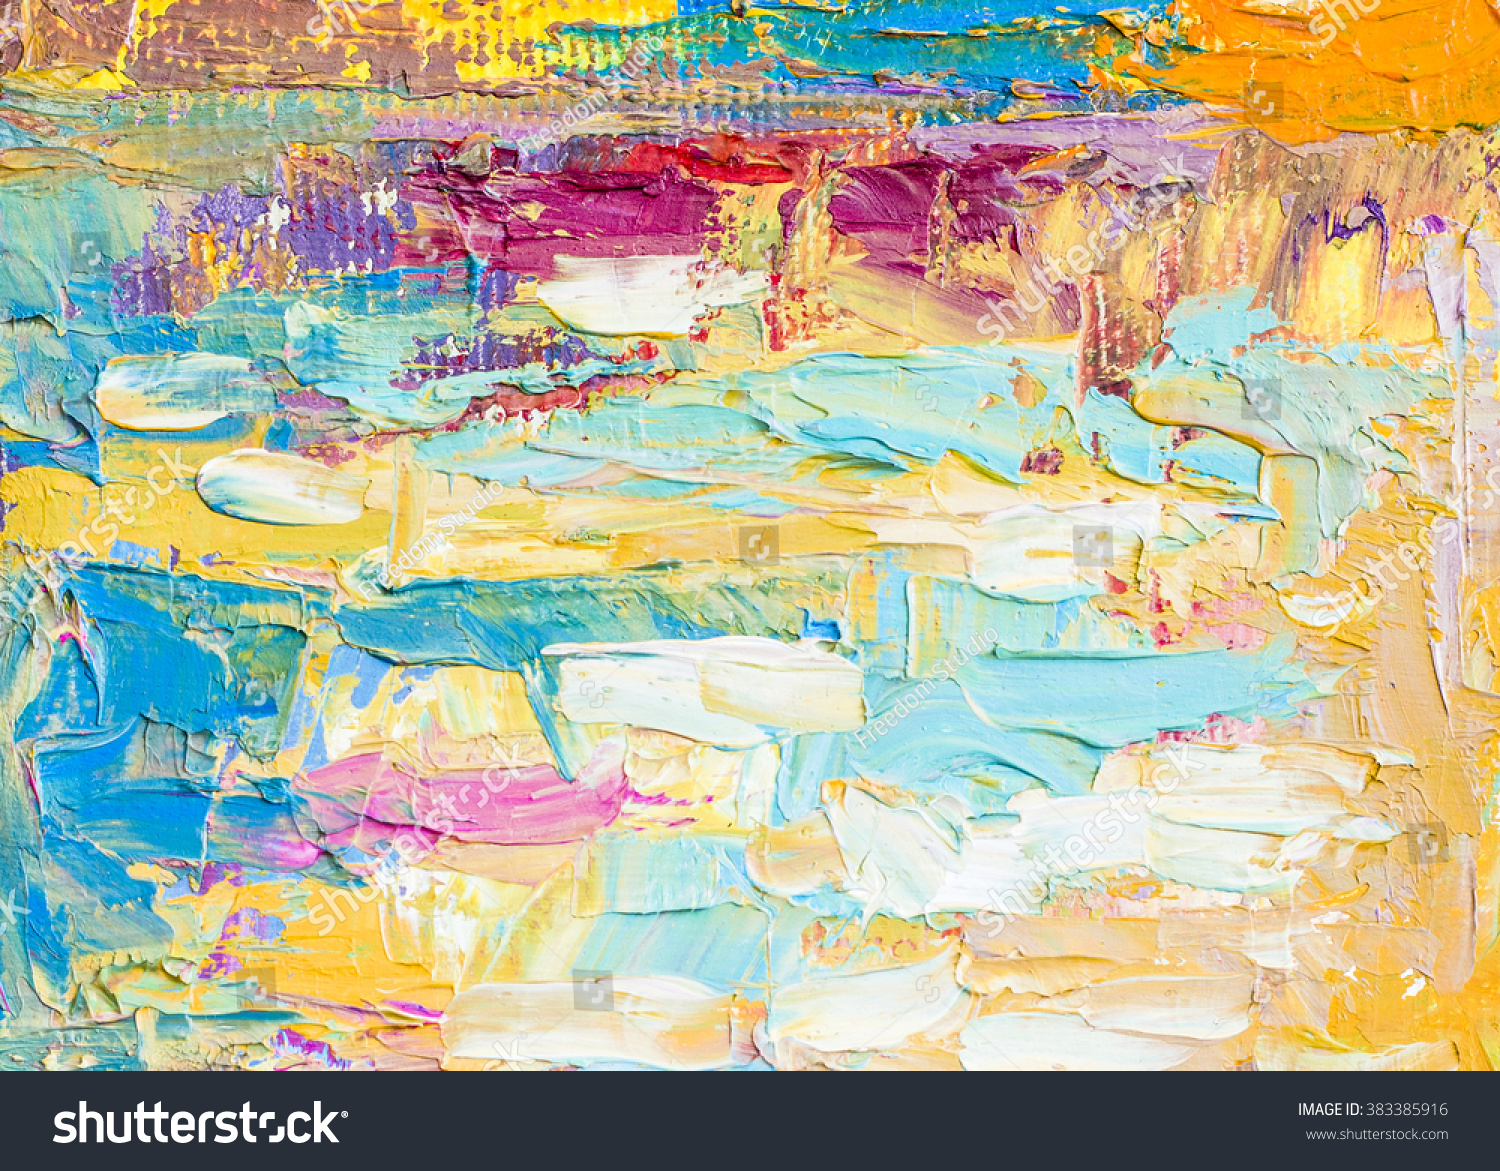 Original Colorful Thick Oil Painting Brush Strokes Palette Knife Texture Background On Canvas Can Use